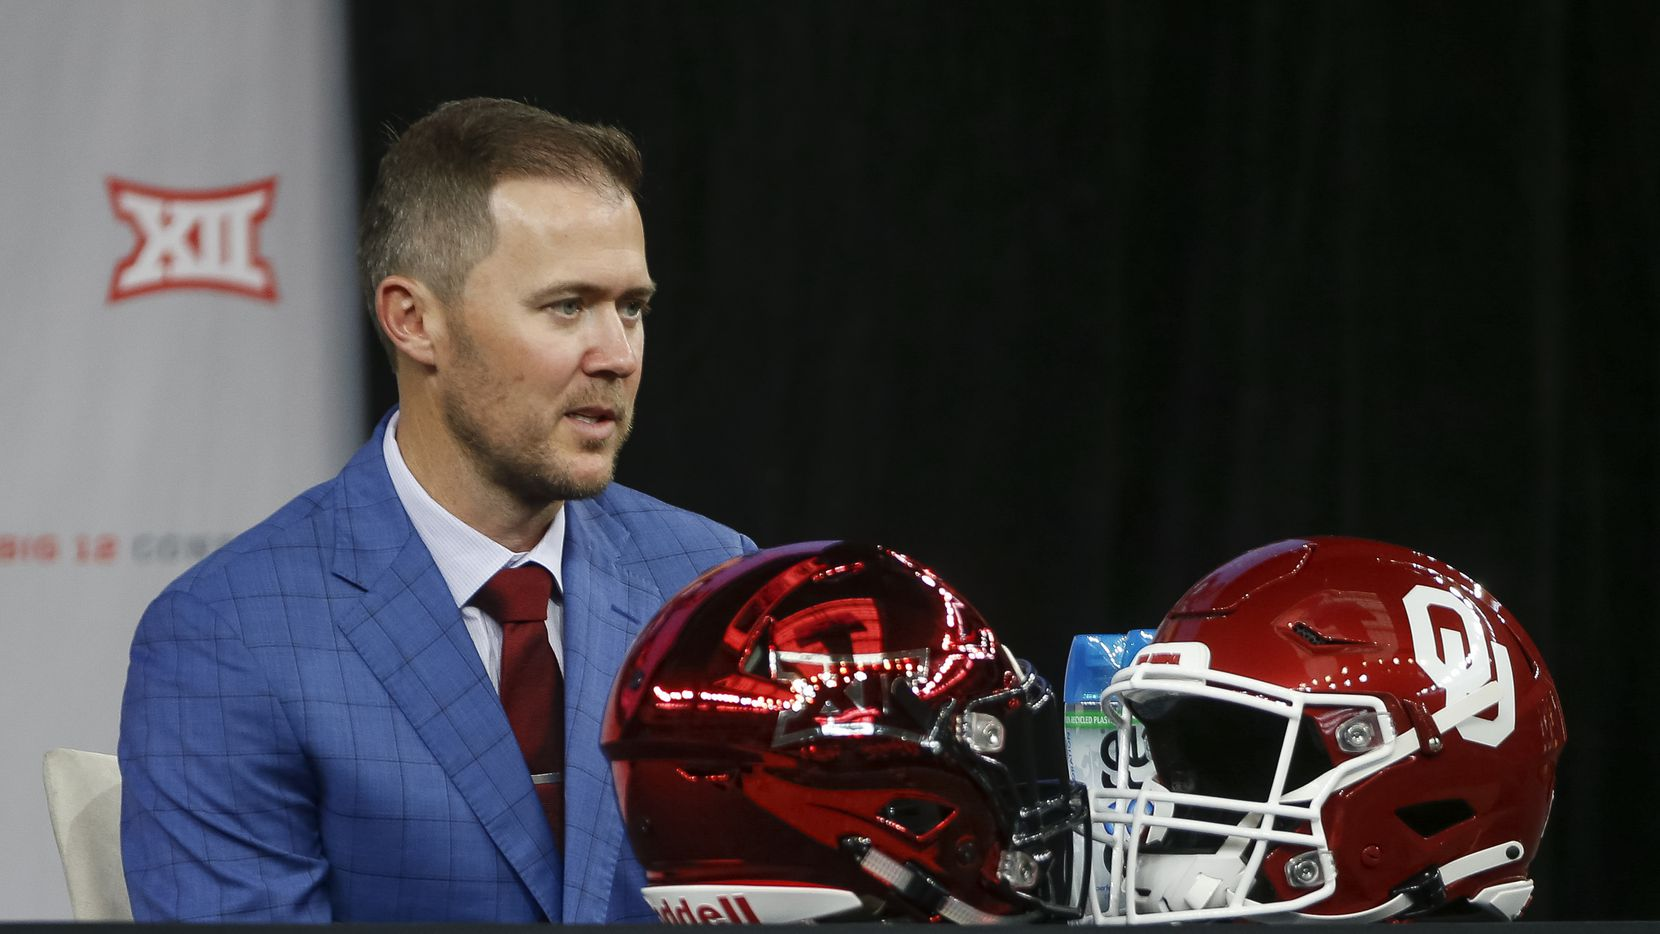 Oklahoma head football coach Lincoln Riley speaks during the Big 12 Conference Media Days at AT&T Stadium on Wednesday, July 14, 2021, in Arlington.